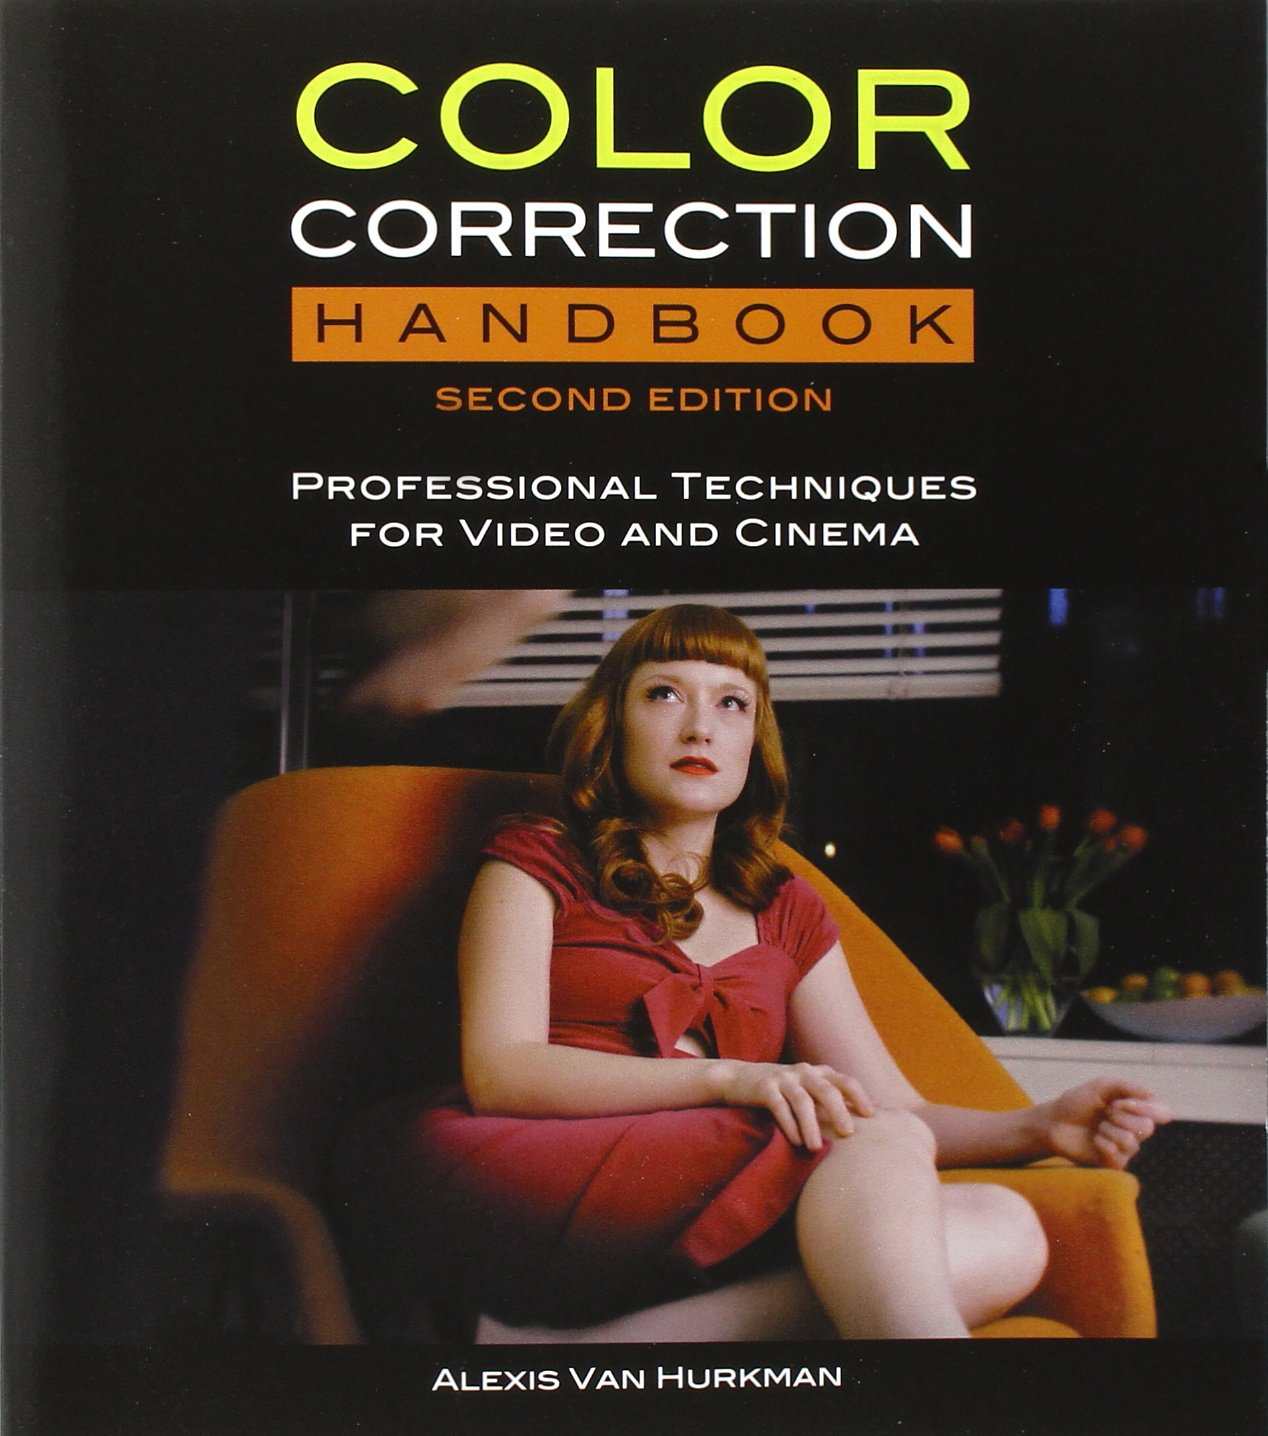 Color Correction Handbook: Professional Techniques for Video and Cinema (2nd Edition) (Digital Video & Audio Editing Courses)